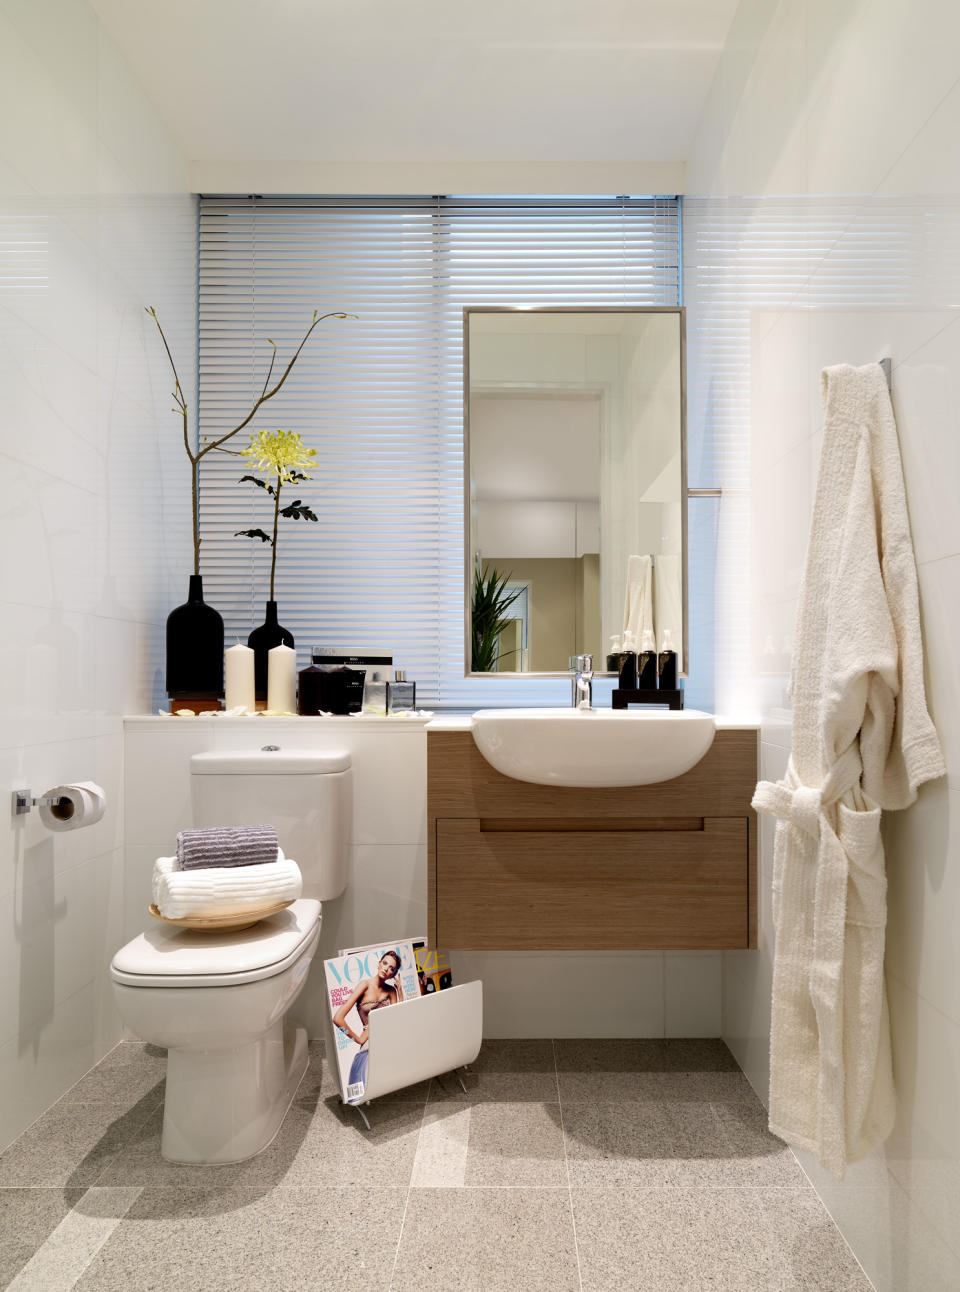 Toilet Room Designs: Simple And Easy Tips For Doing Up Your Bathroom